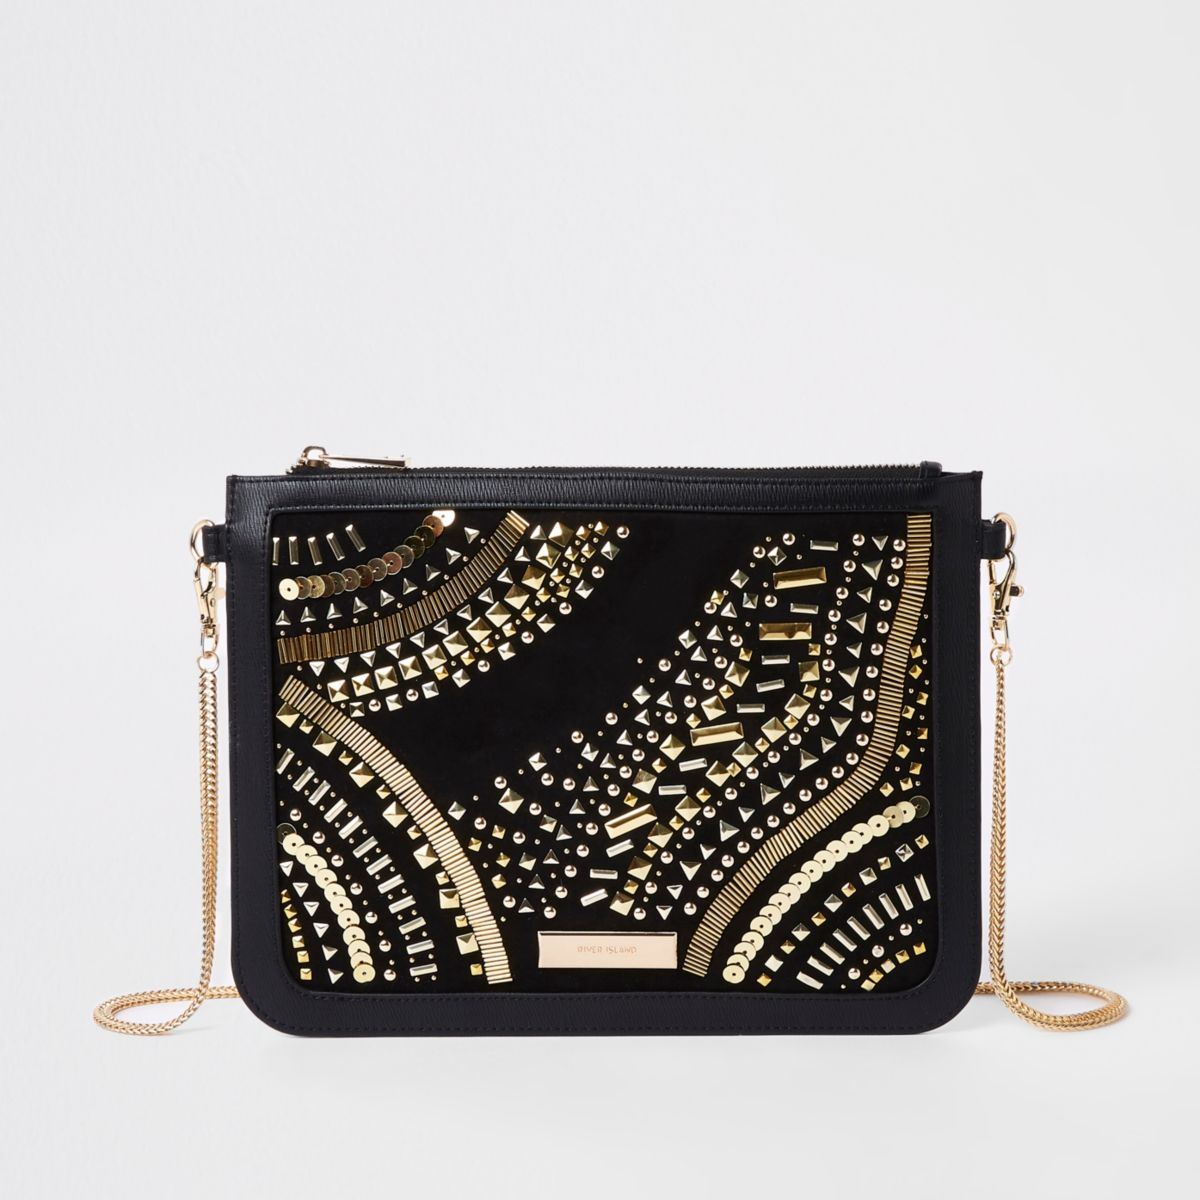 Black stud embellished chain strap clutch bag